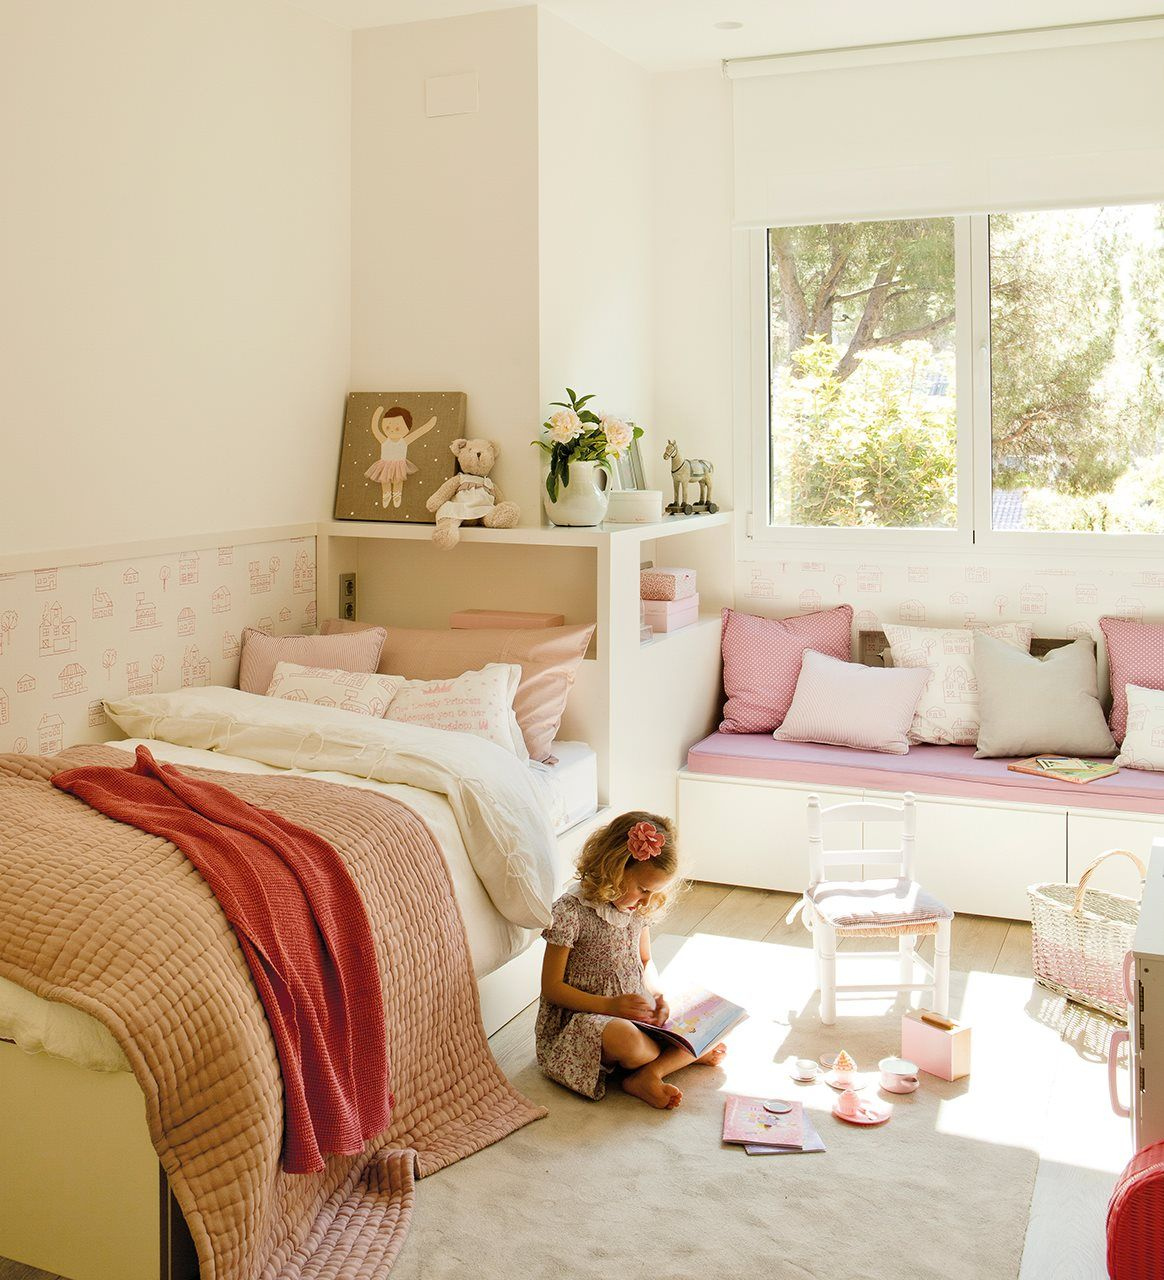 Kids room for two espacio ni o a pinterest inrichting kinderkamer en kinderkamer - Kamer paard meisje ...